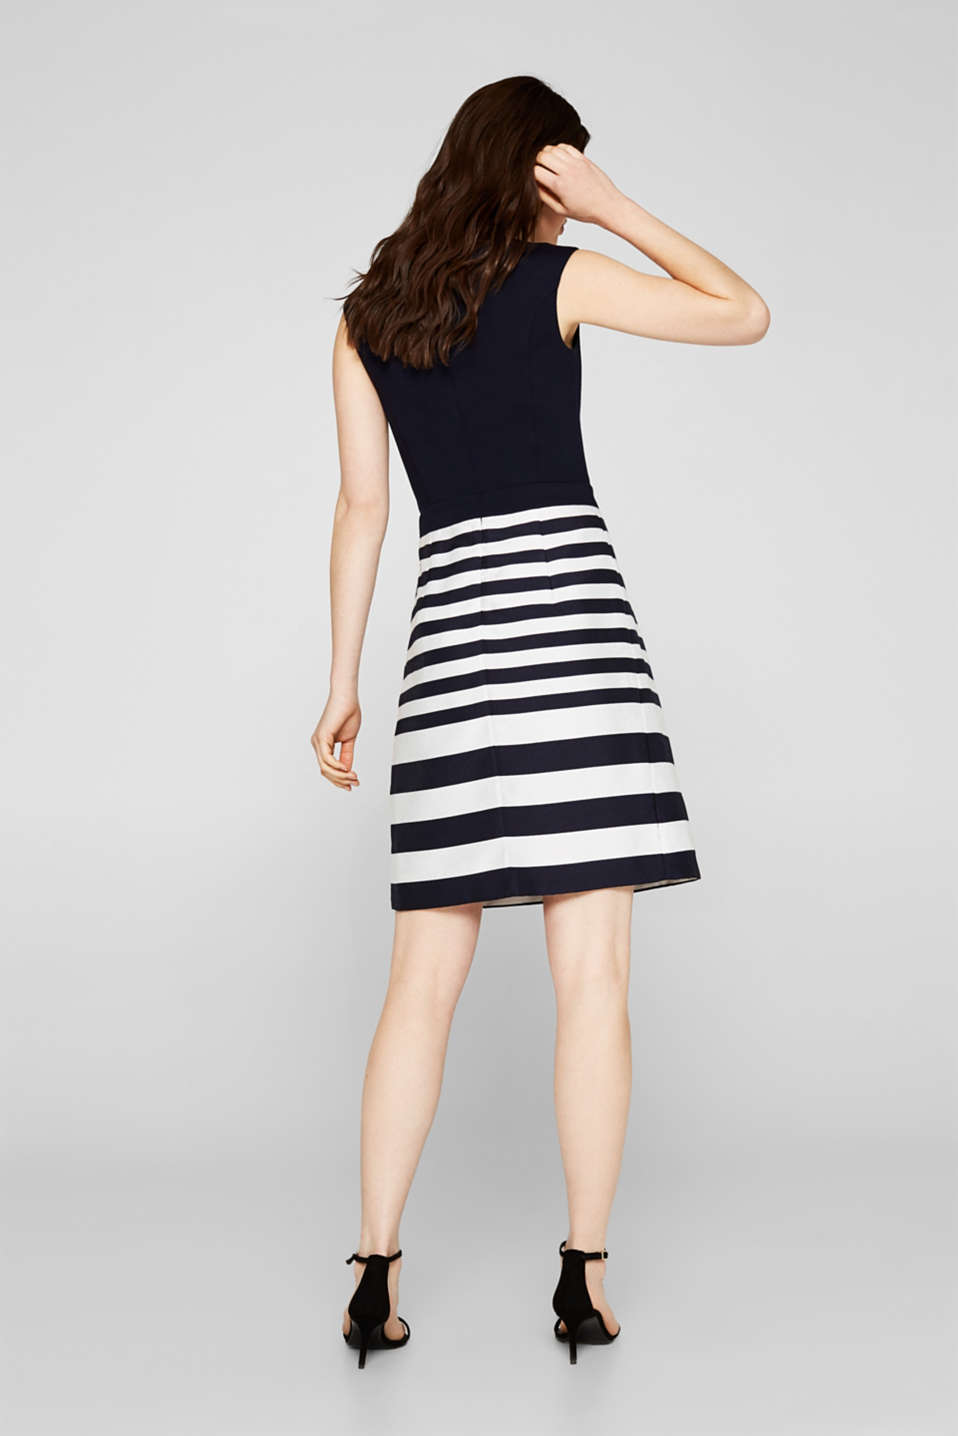 Stretch jersey and fabric dress, NAVY, detail image number 2